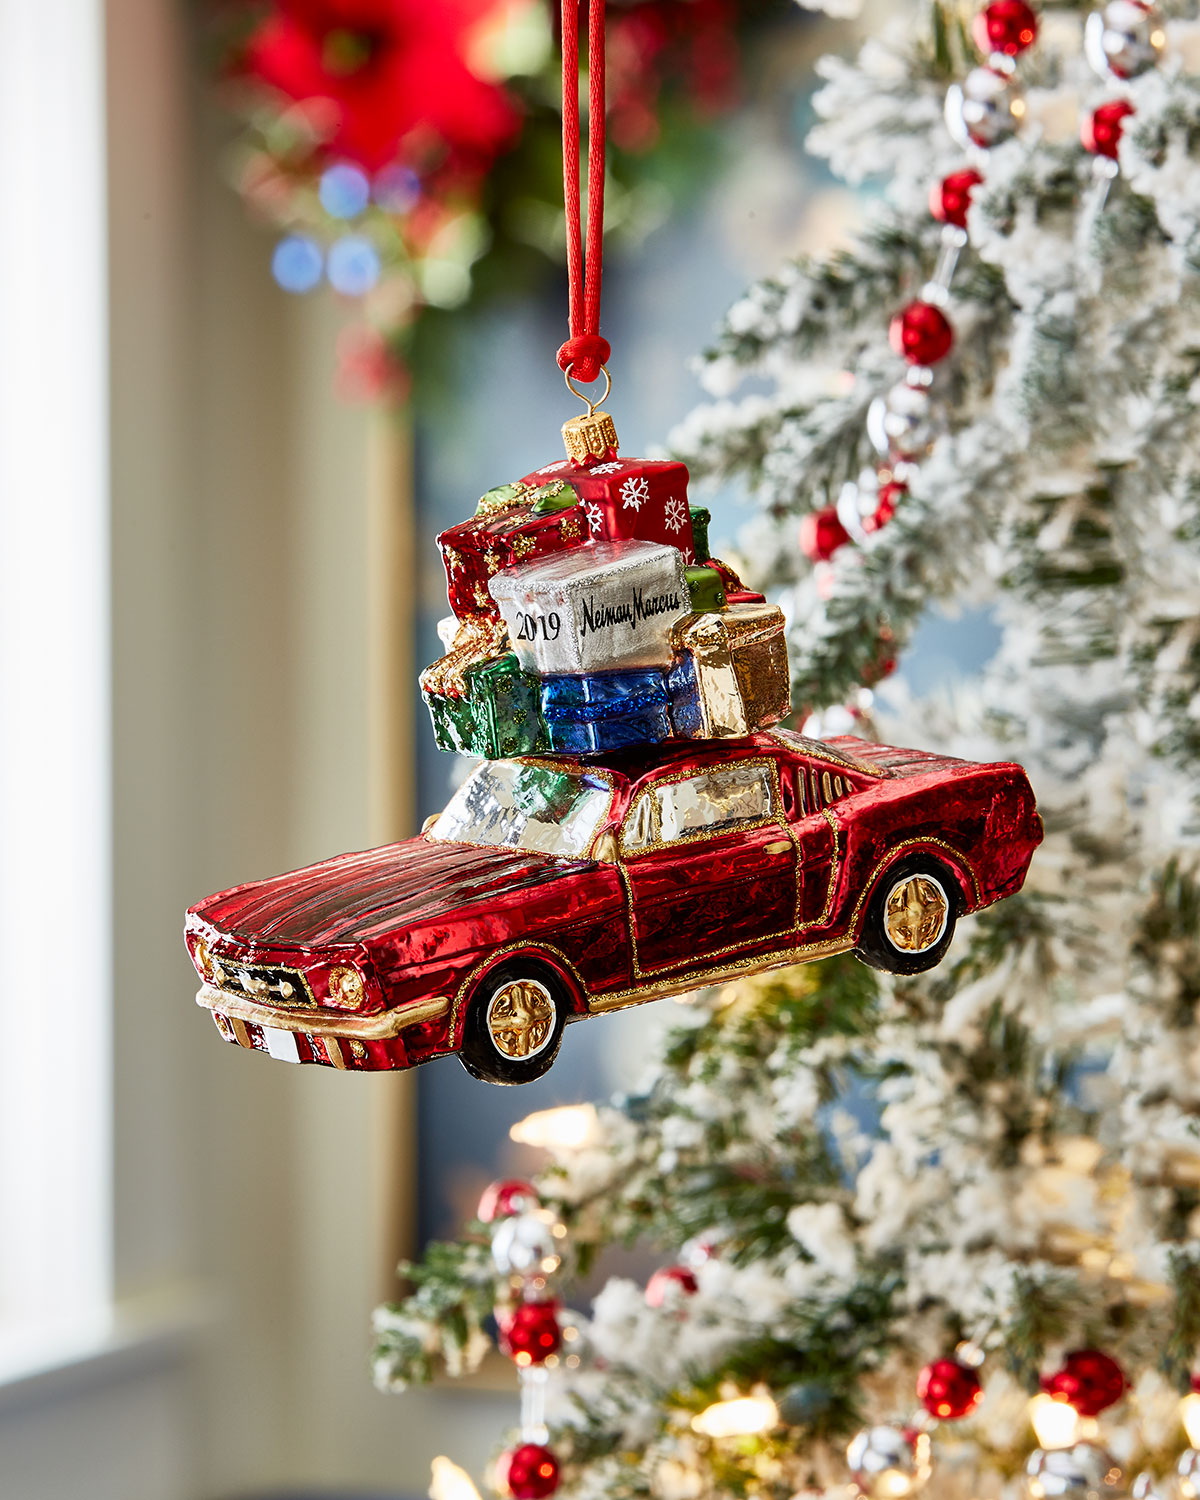 Christmas Sports Car.Sports Car With Packages Christmas Ornament